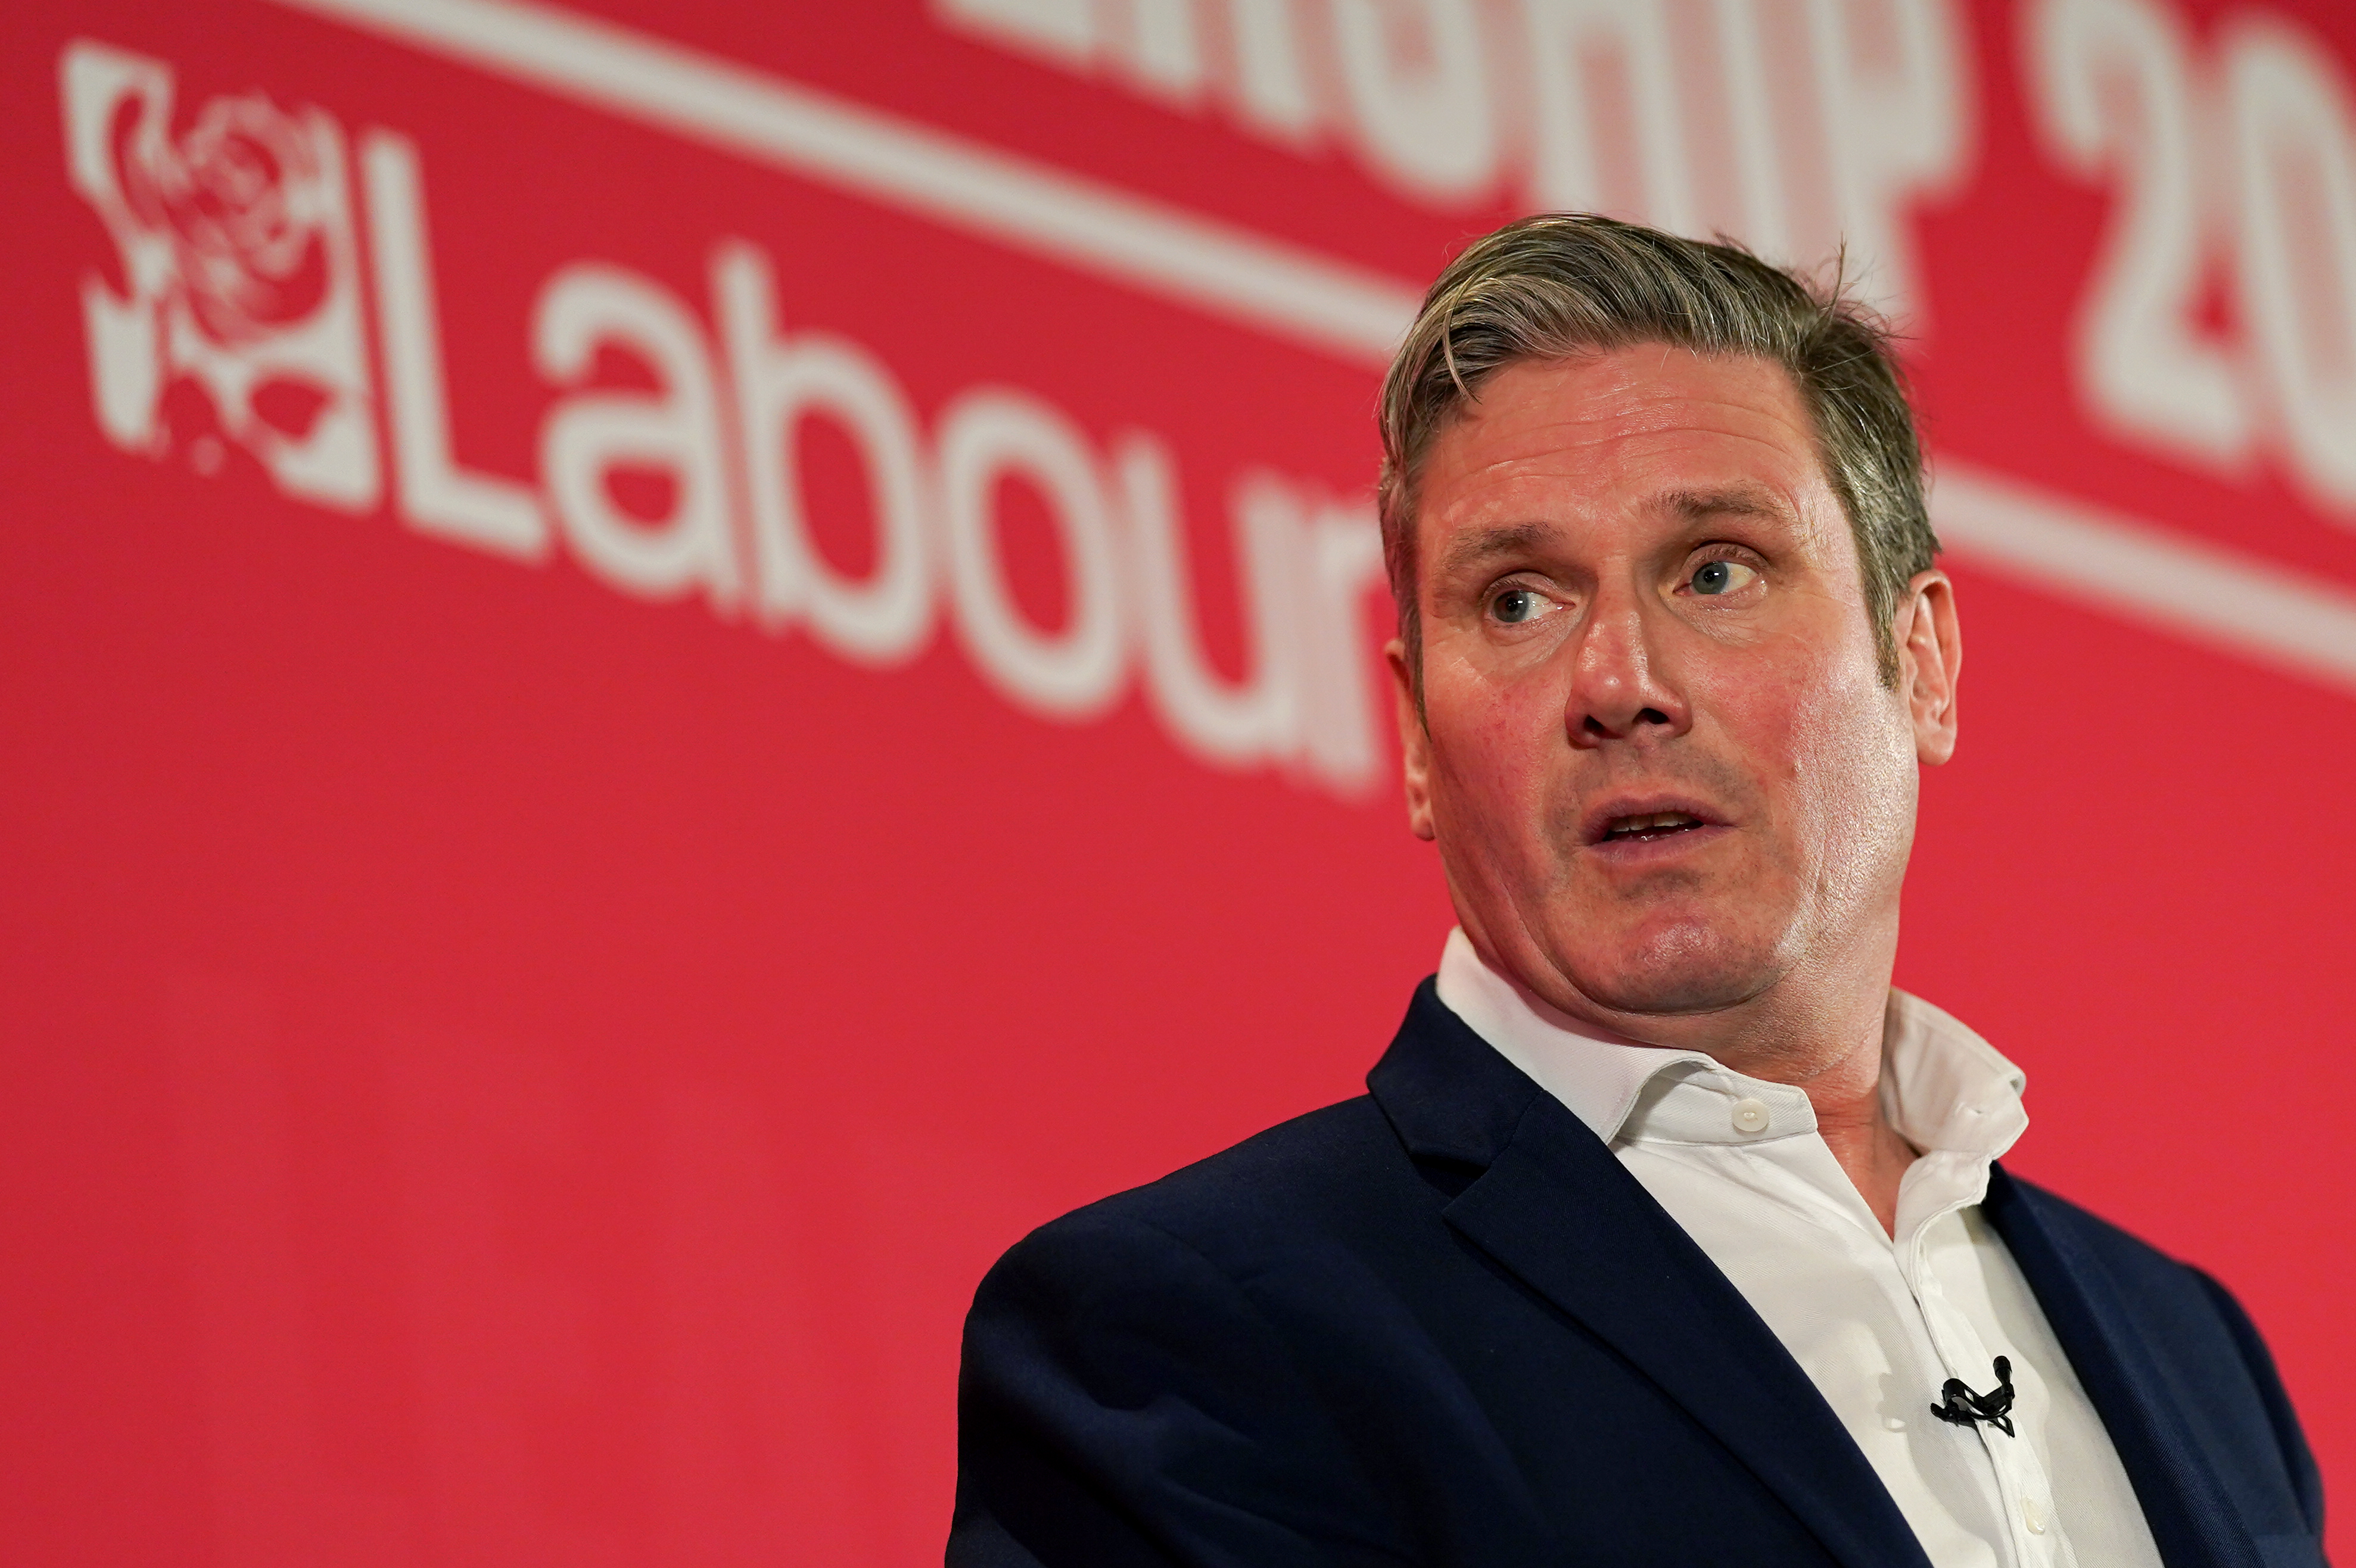 Keir Starmer addresses the audience during the Labour Party Leadership hustings at the Radisson Blu Hotel in Durham, England. (Photo by Ian Forsyth/Getty Images)